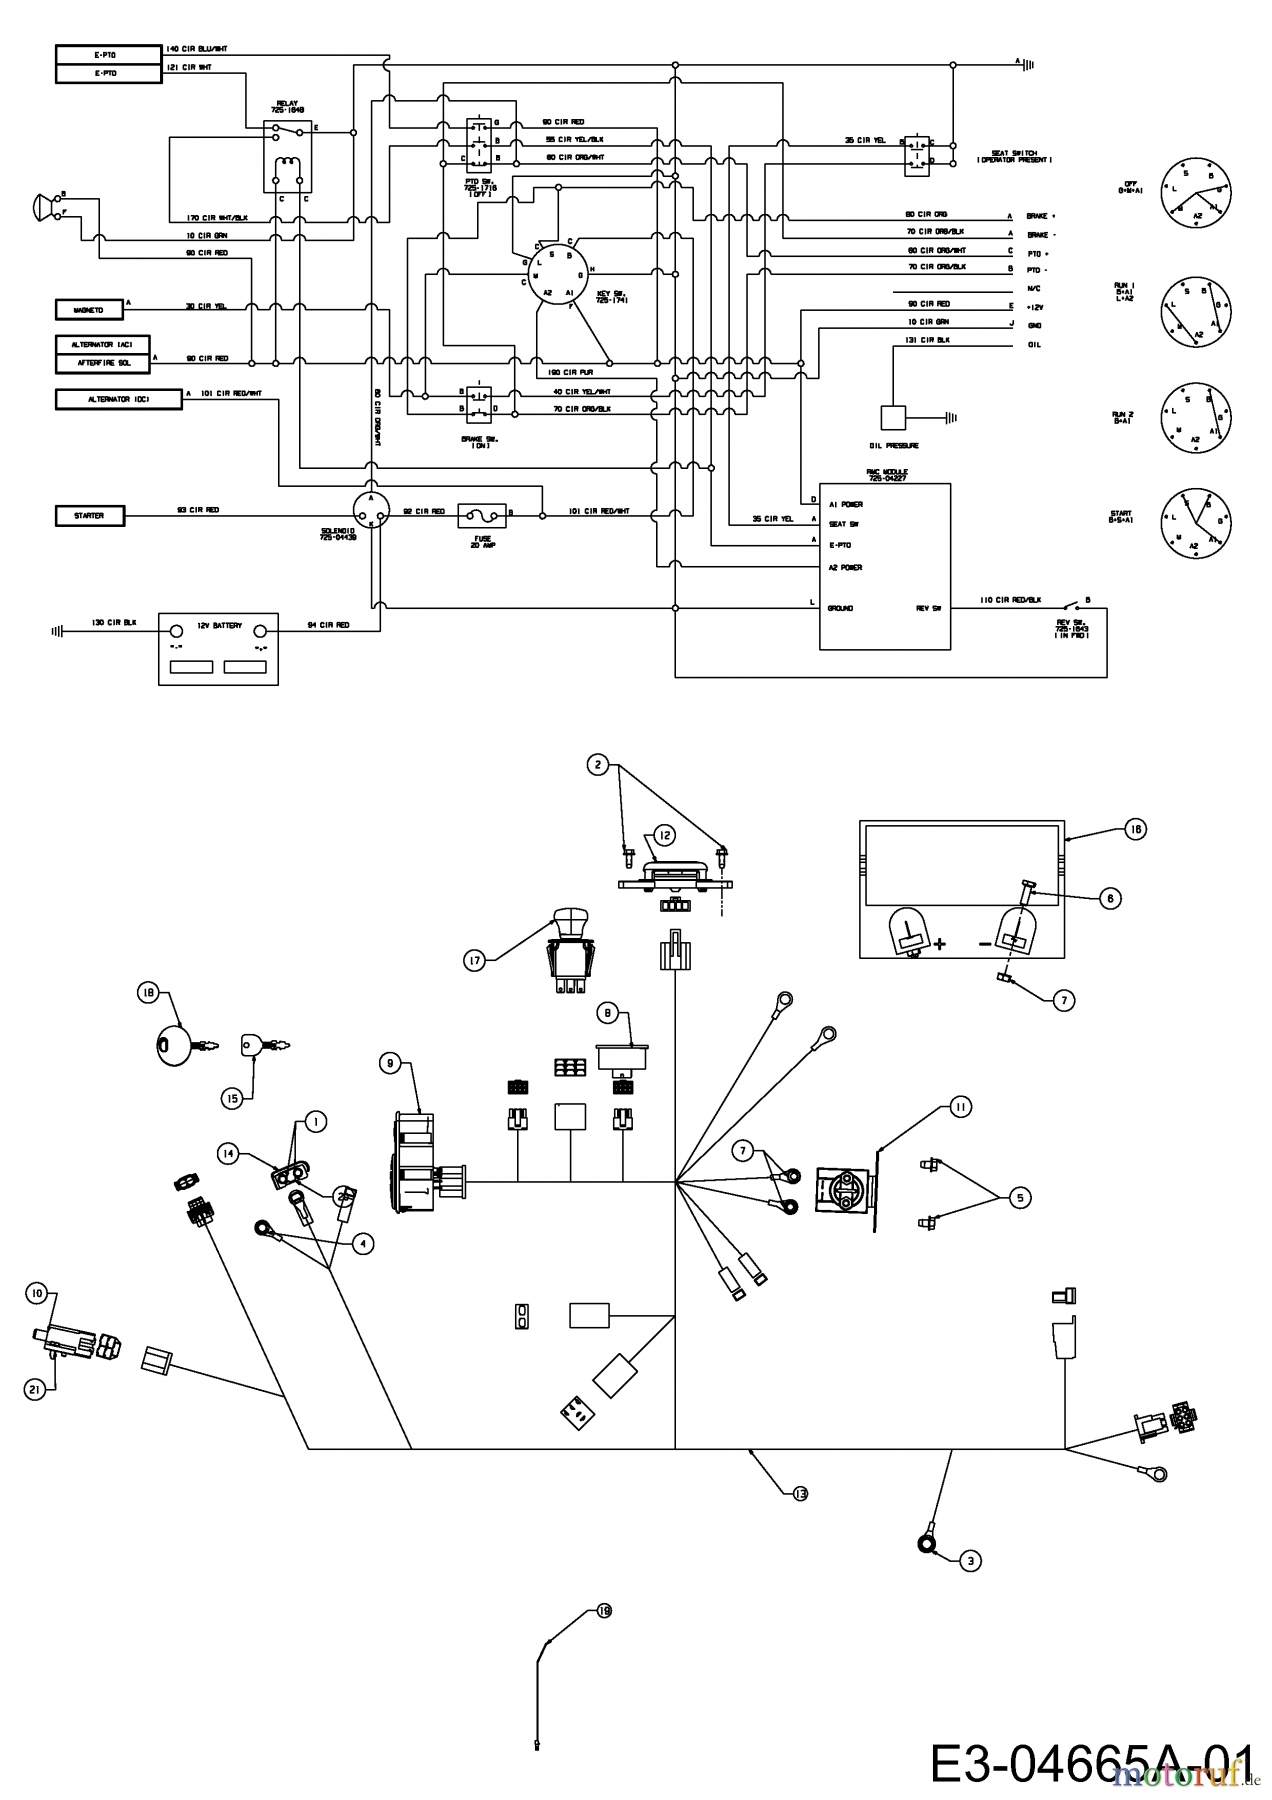 Rzt42 Cub Cadet Schematics Free Wiring Diagram For You Rzt 50 42 Library Rh Budoshop4you De Lt1050 Rzt50